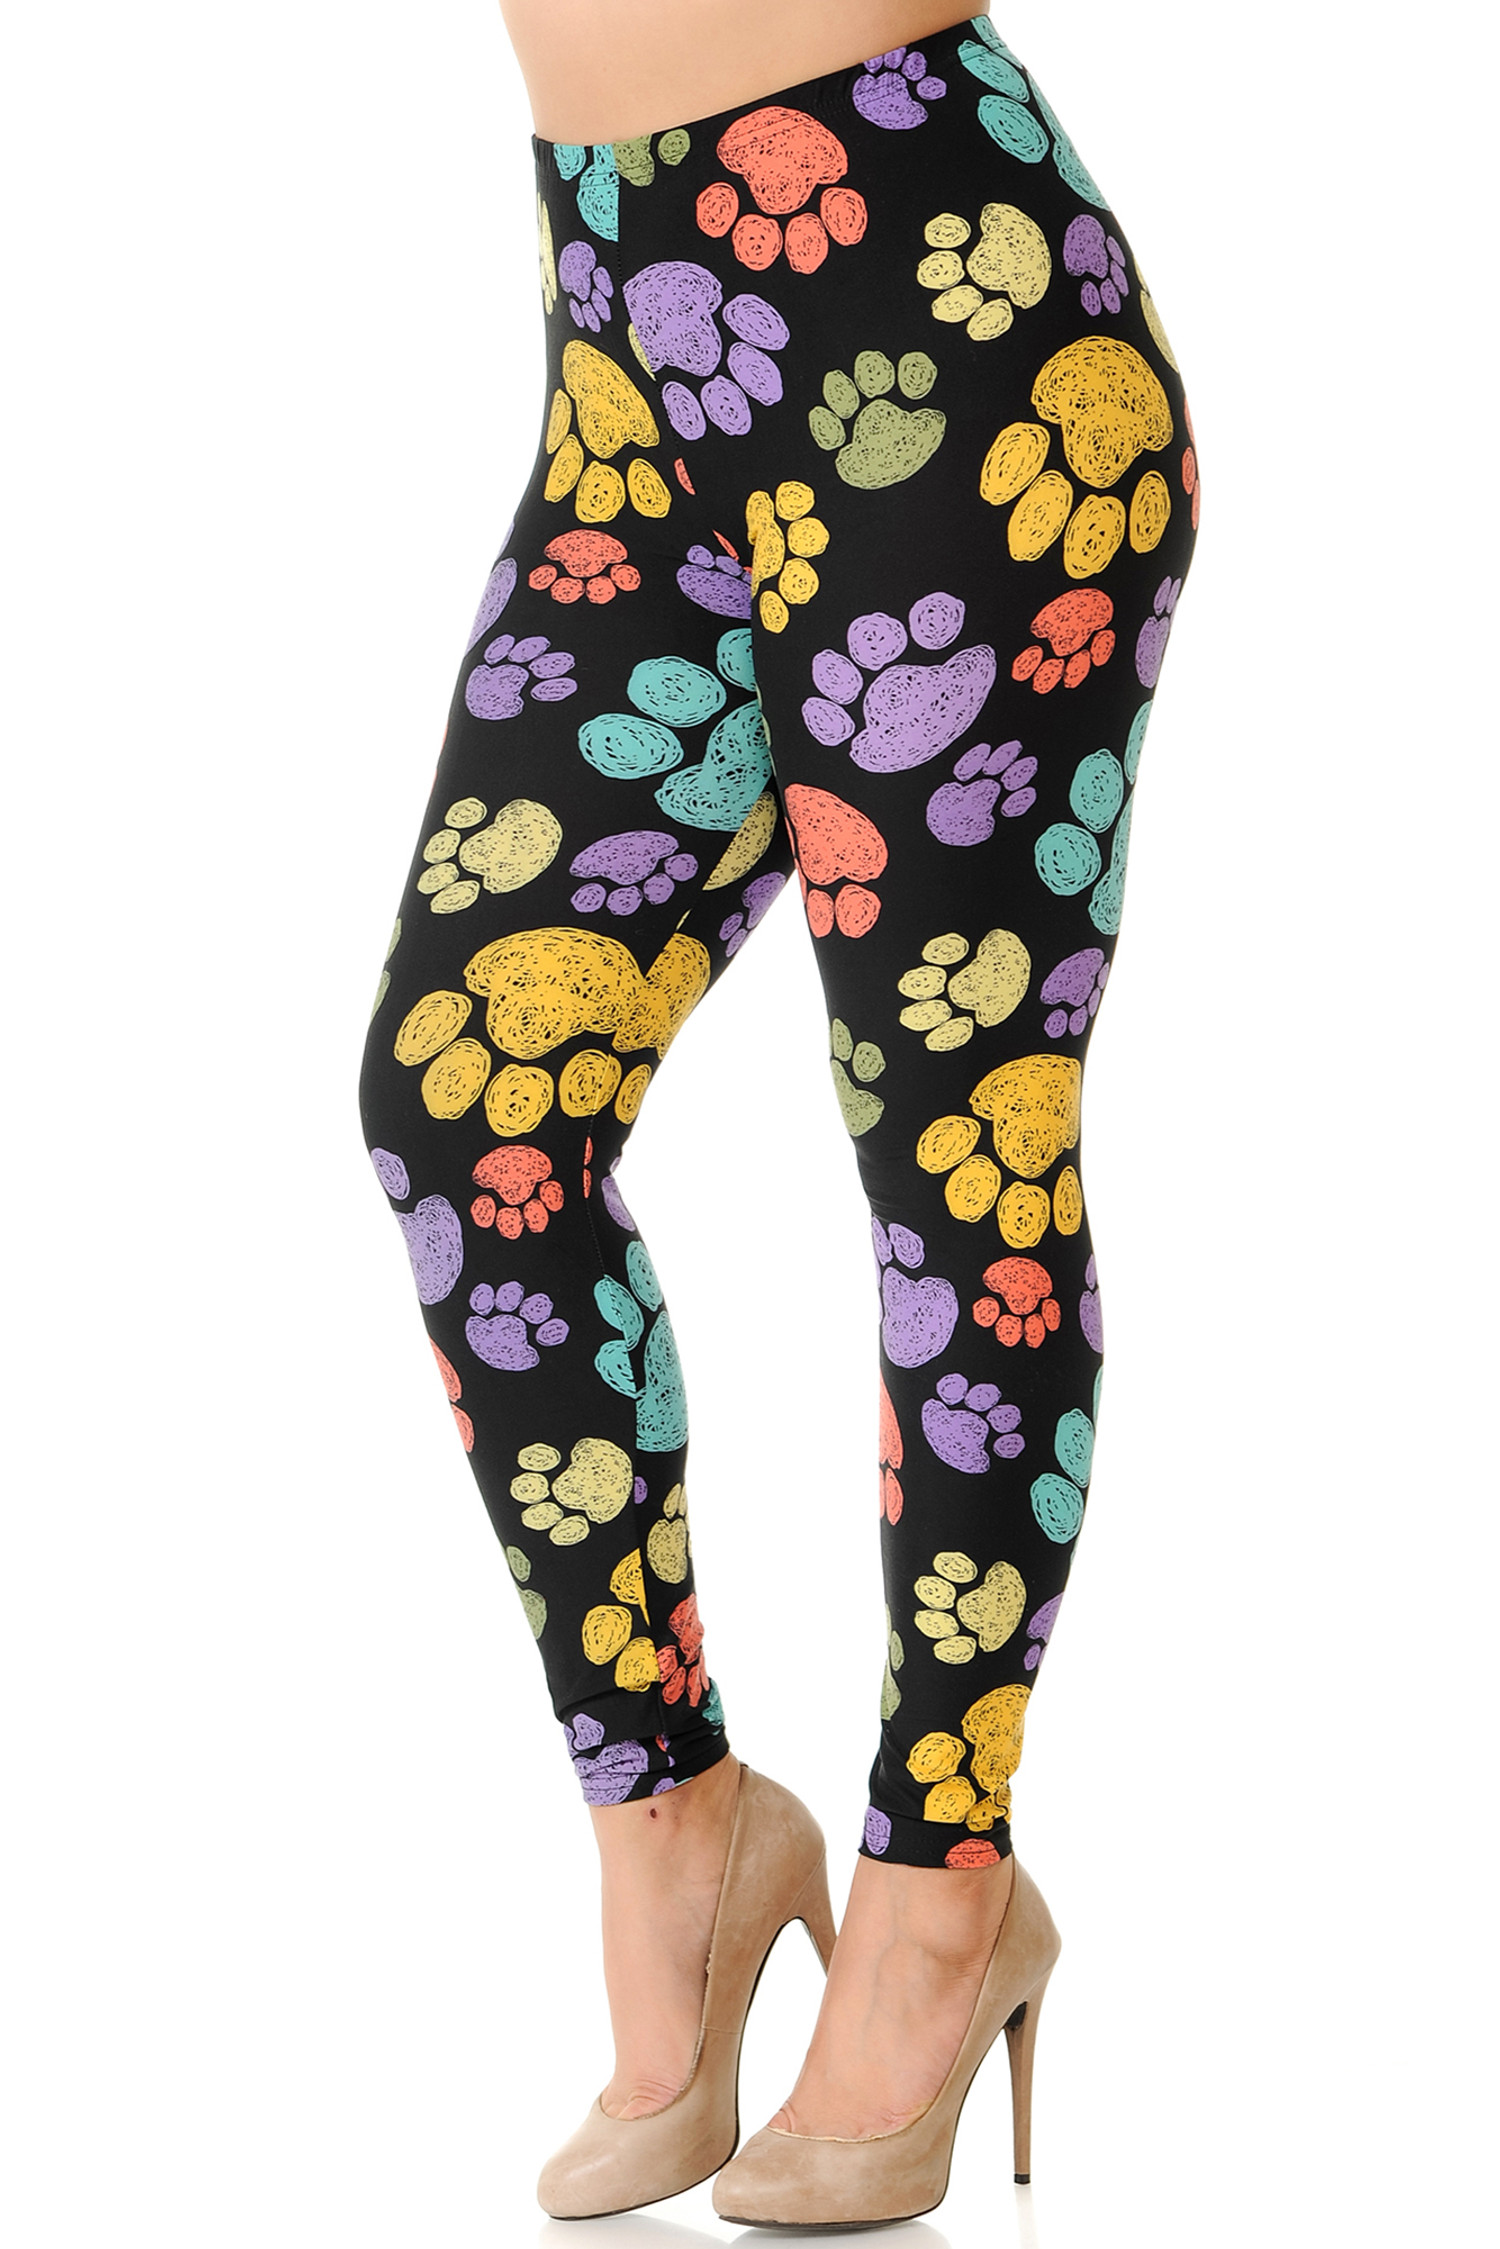 45 degree image of Creamy Soft Colorful Paw Print Extra Plus Size Leggings - 3X-5X - USA Fashion™ with a vibrant print on a black fabric base.